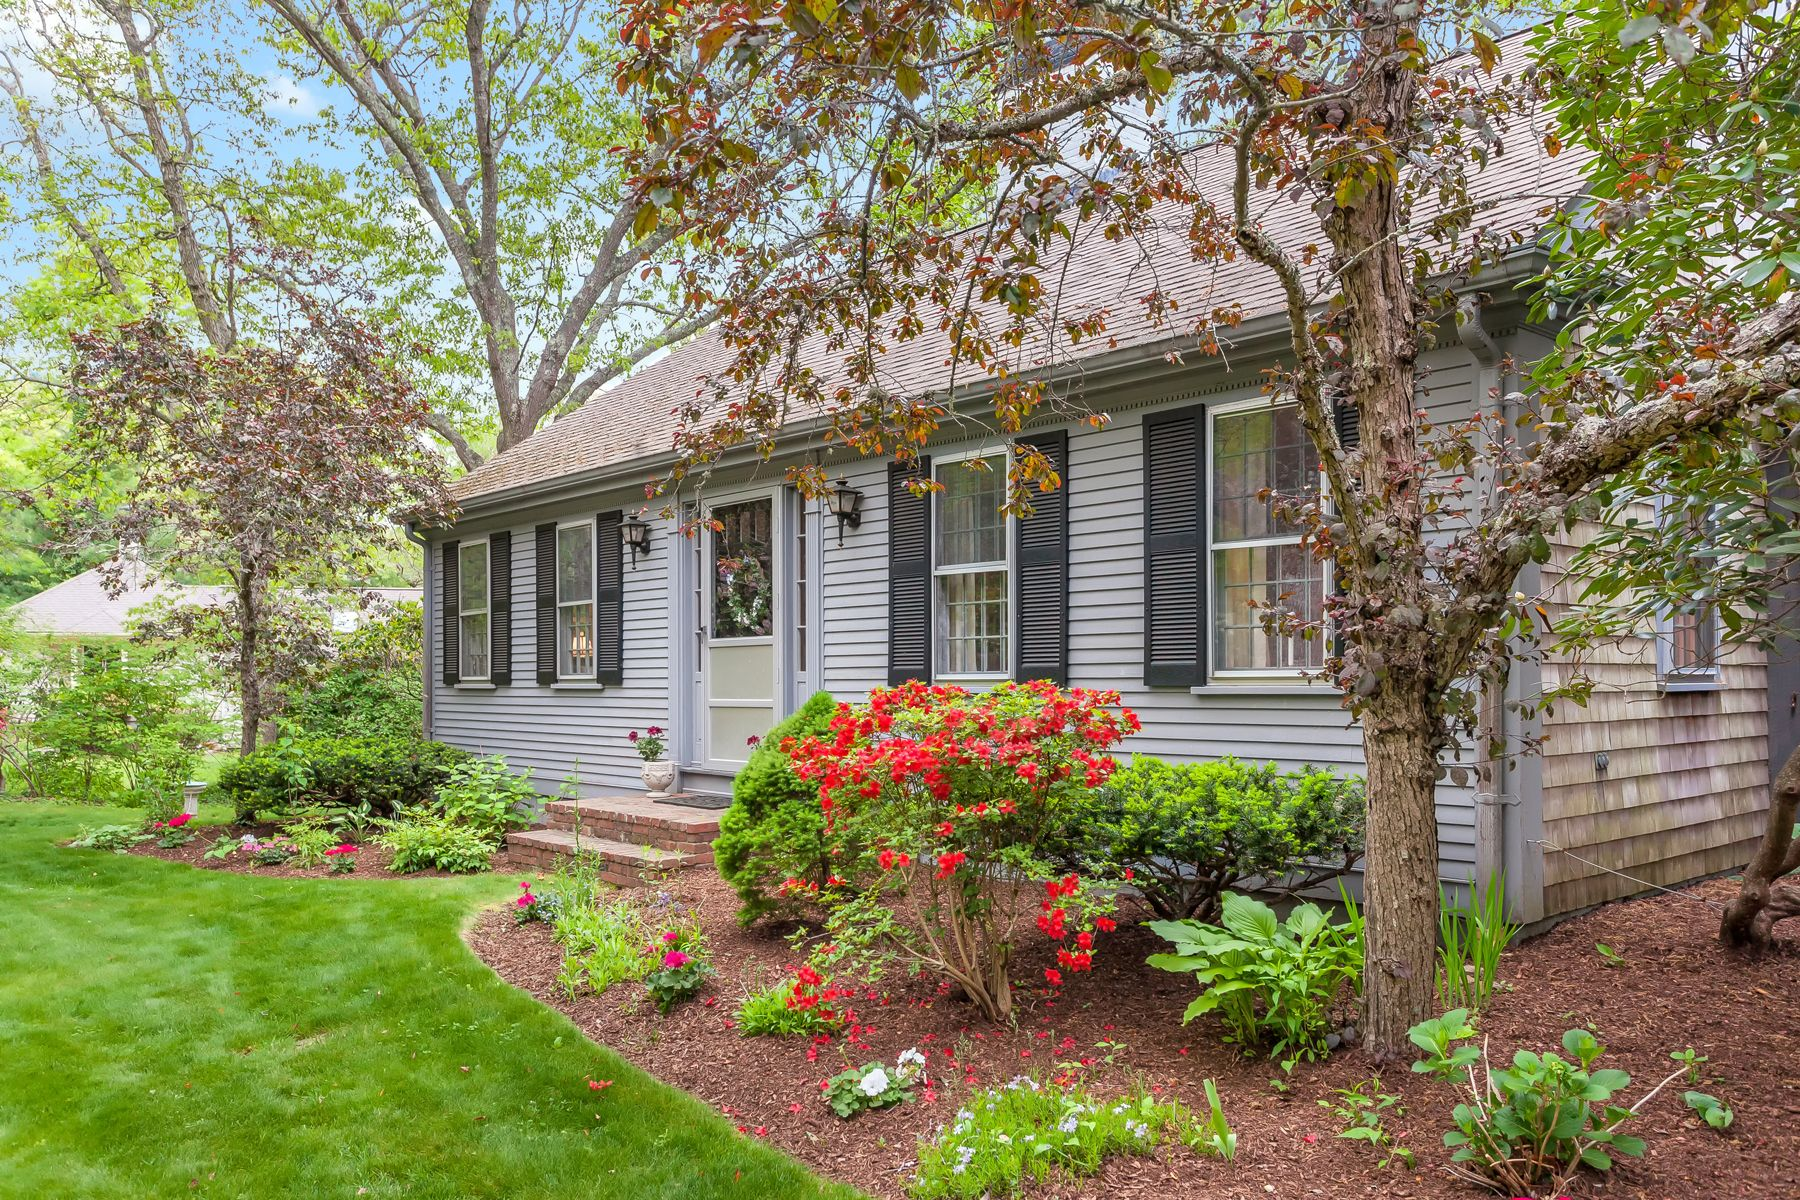 Single Family Homes for Active at Classic Sandwich Cape 24 Shawme Road Sandwich, Massachusetts 02563 United States